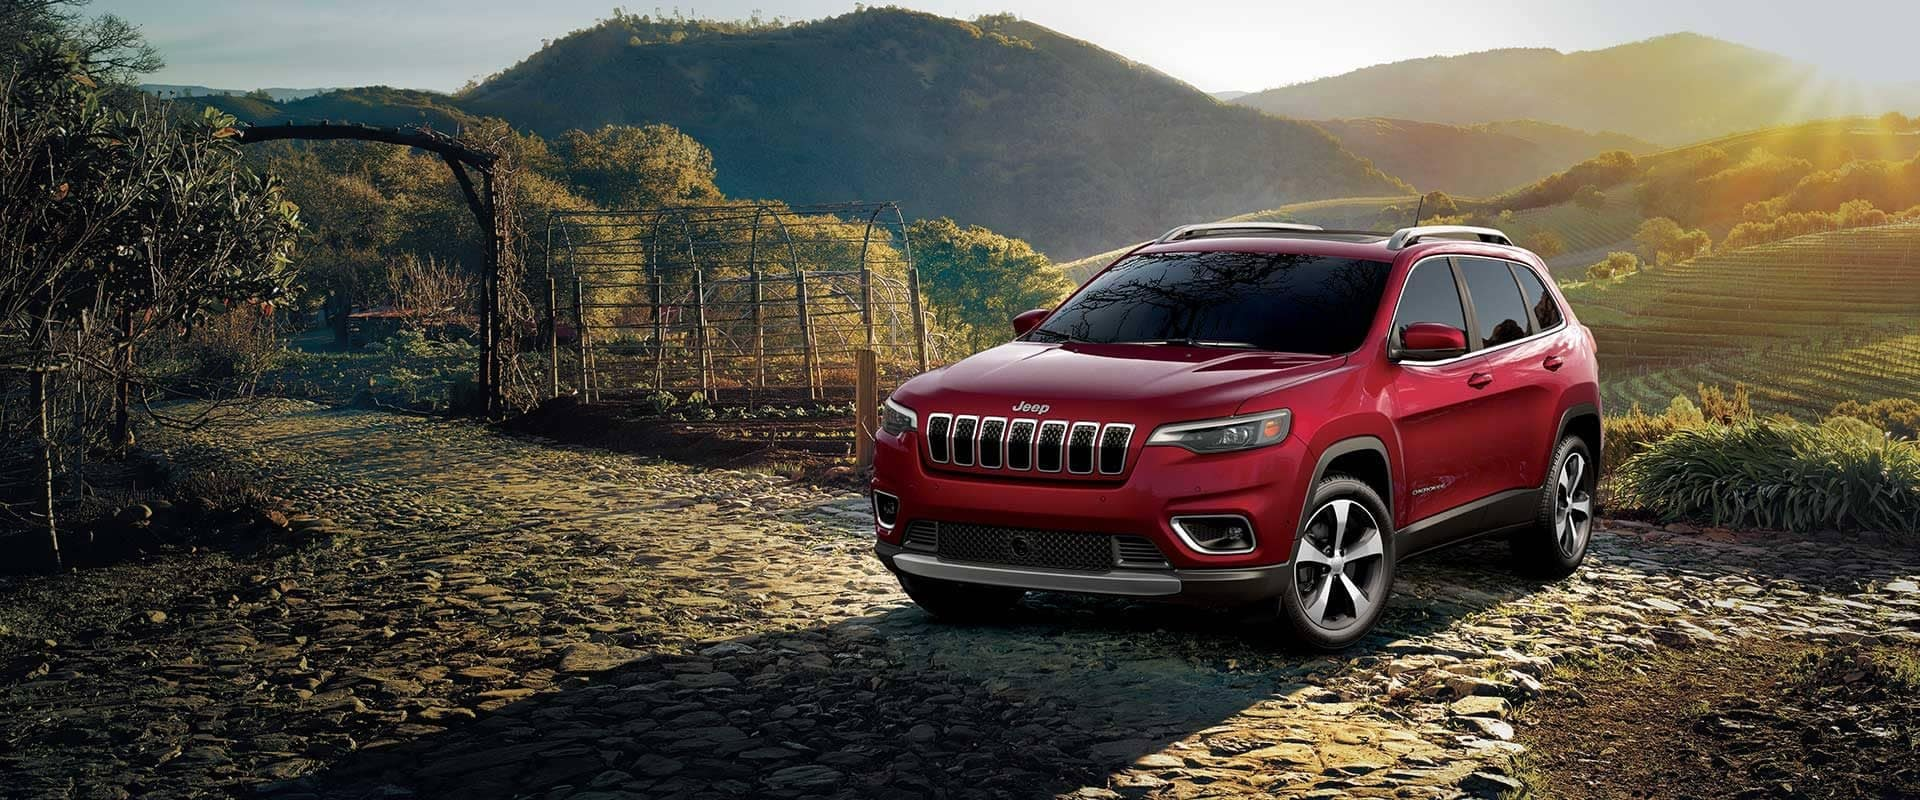 2019 Jeep Cherokee Previewed at Detroit Auto Show | Knight ...